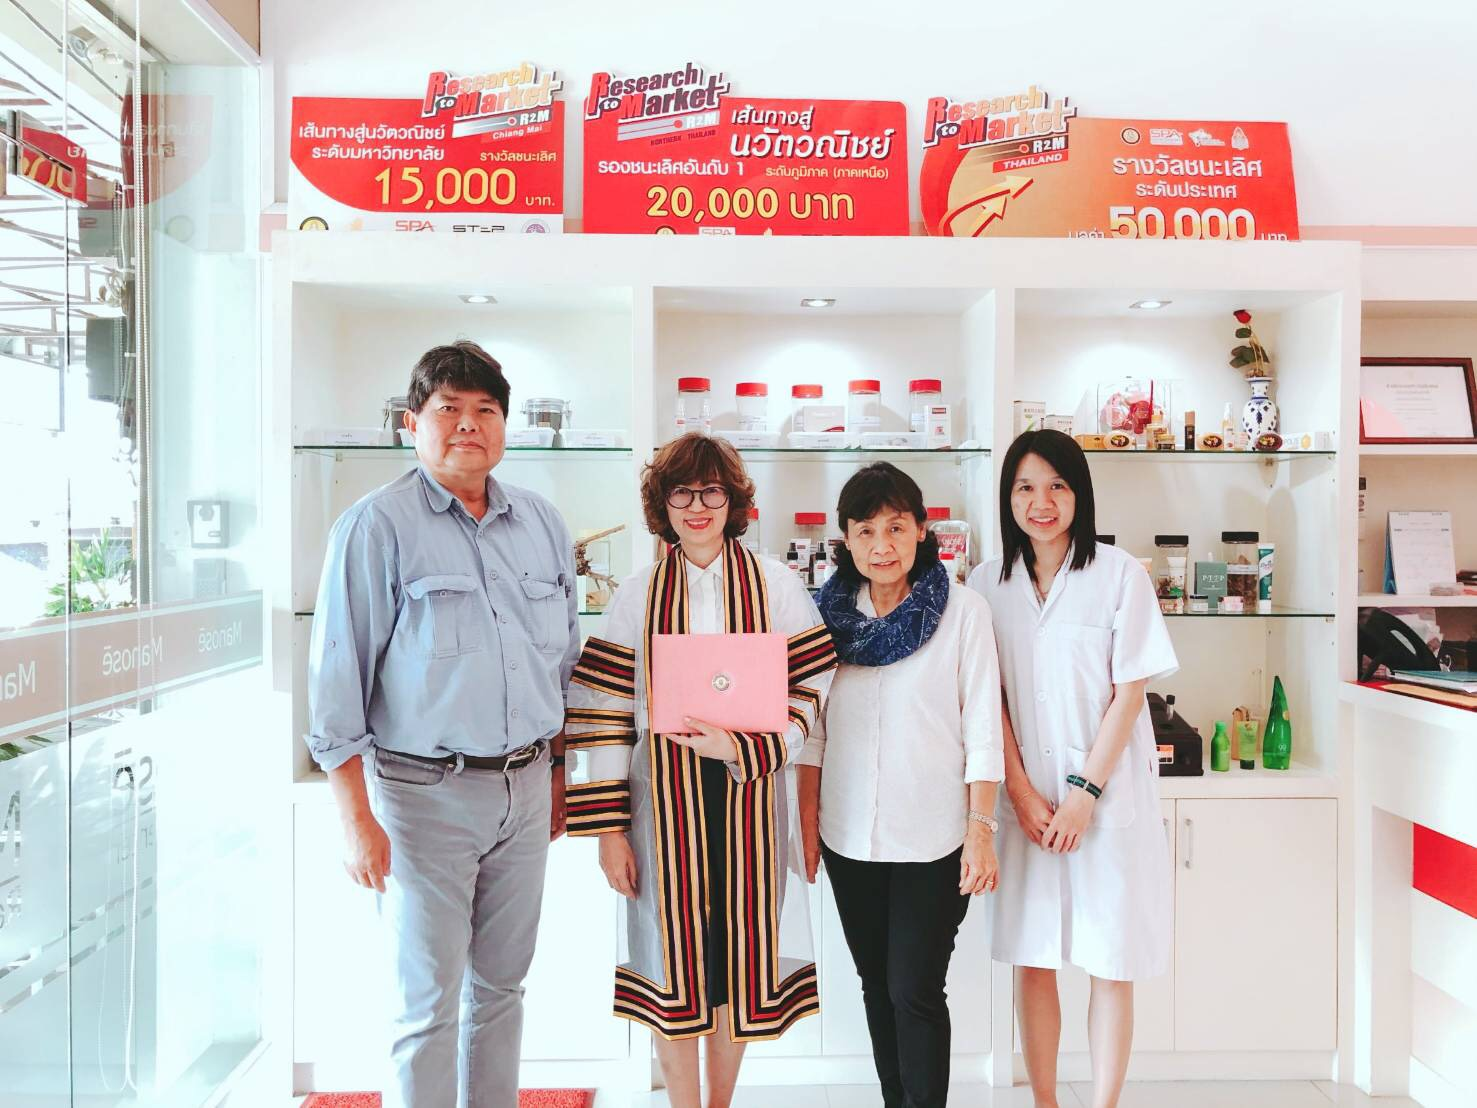 Mrs. Monthira Jearanaikulvanich, Master of Cosmetic Technology, Faculty of Engineering and Technology, North-Chiang Mai University (NCU) has visited Manose Health and Beauty Research Center